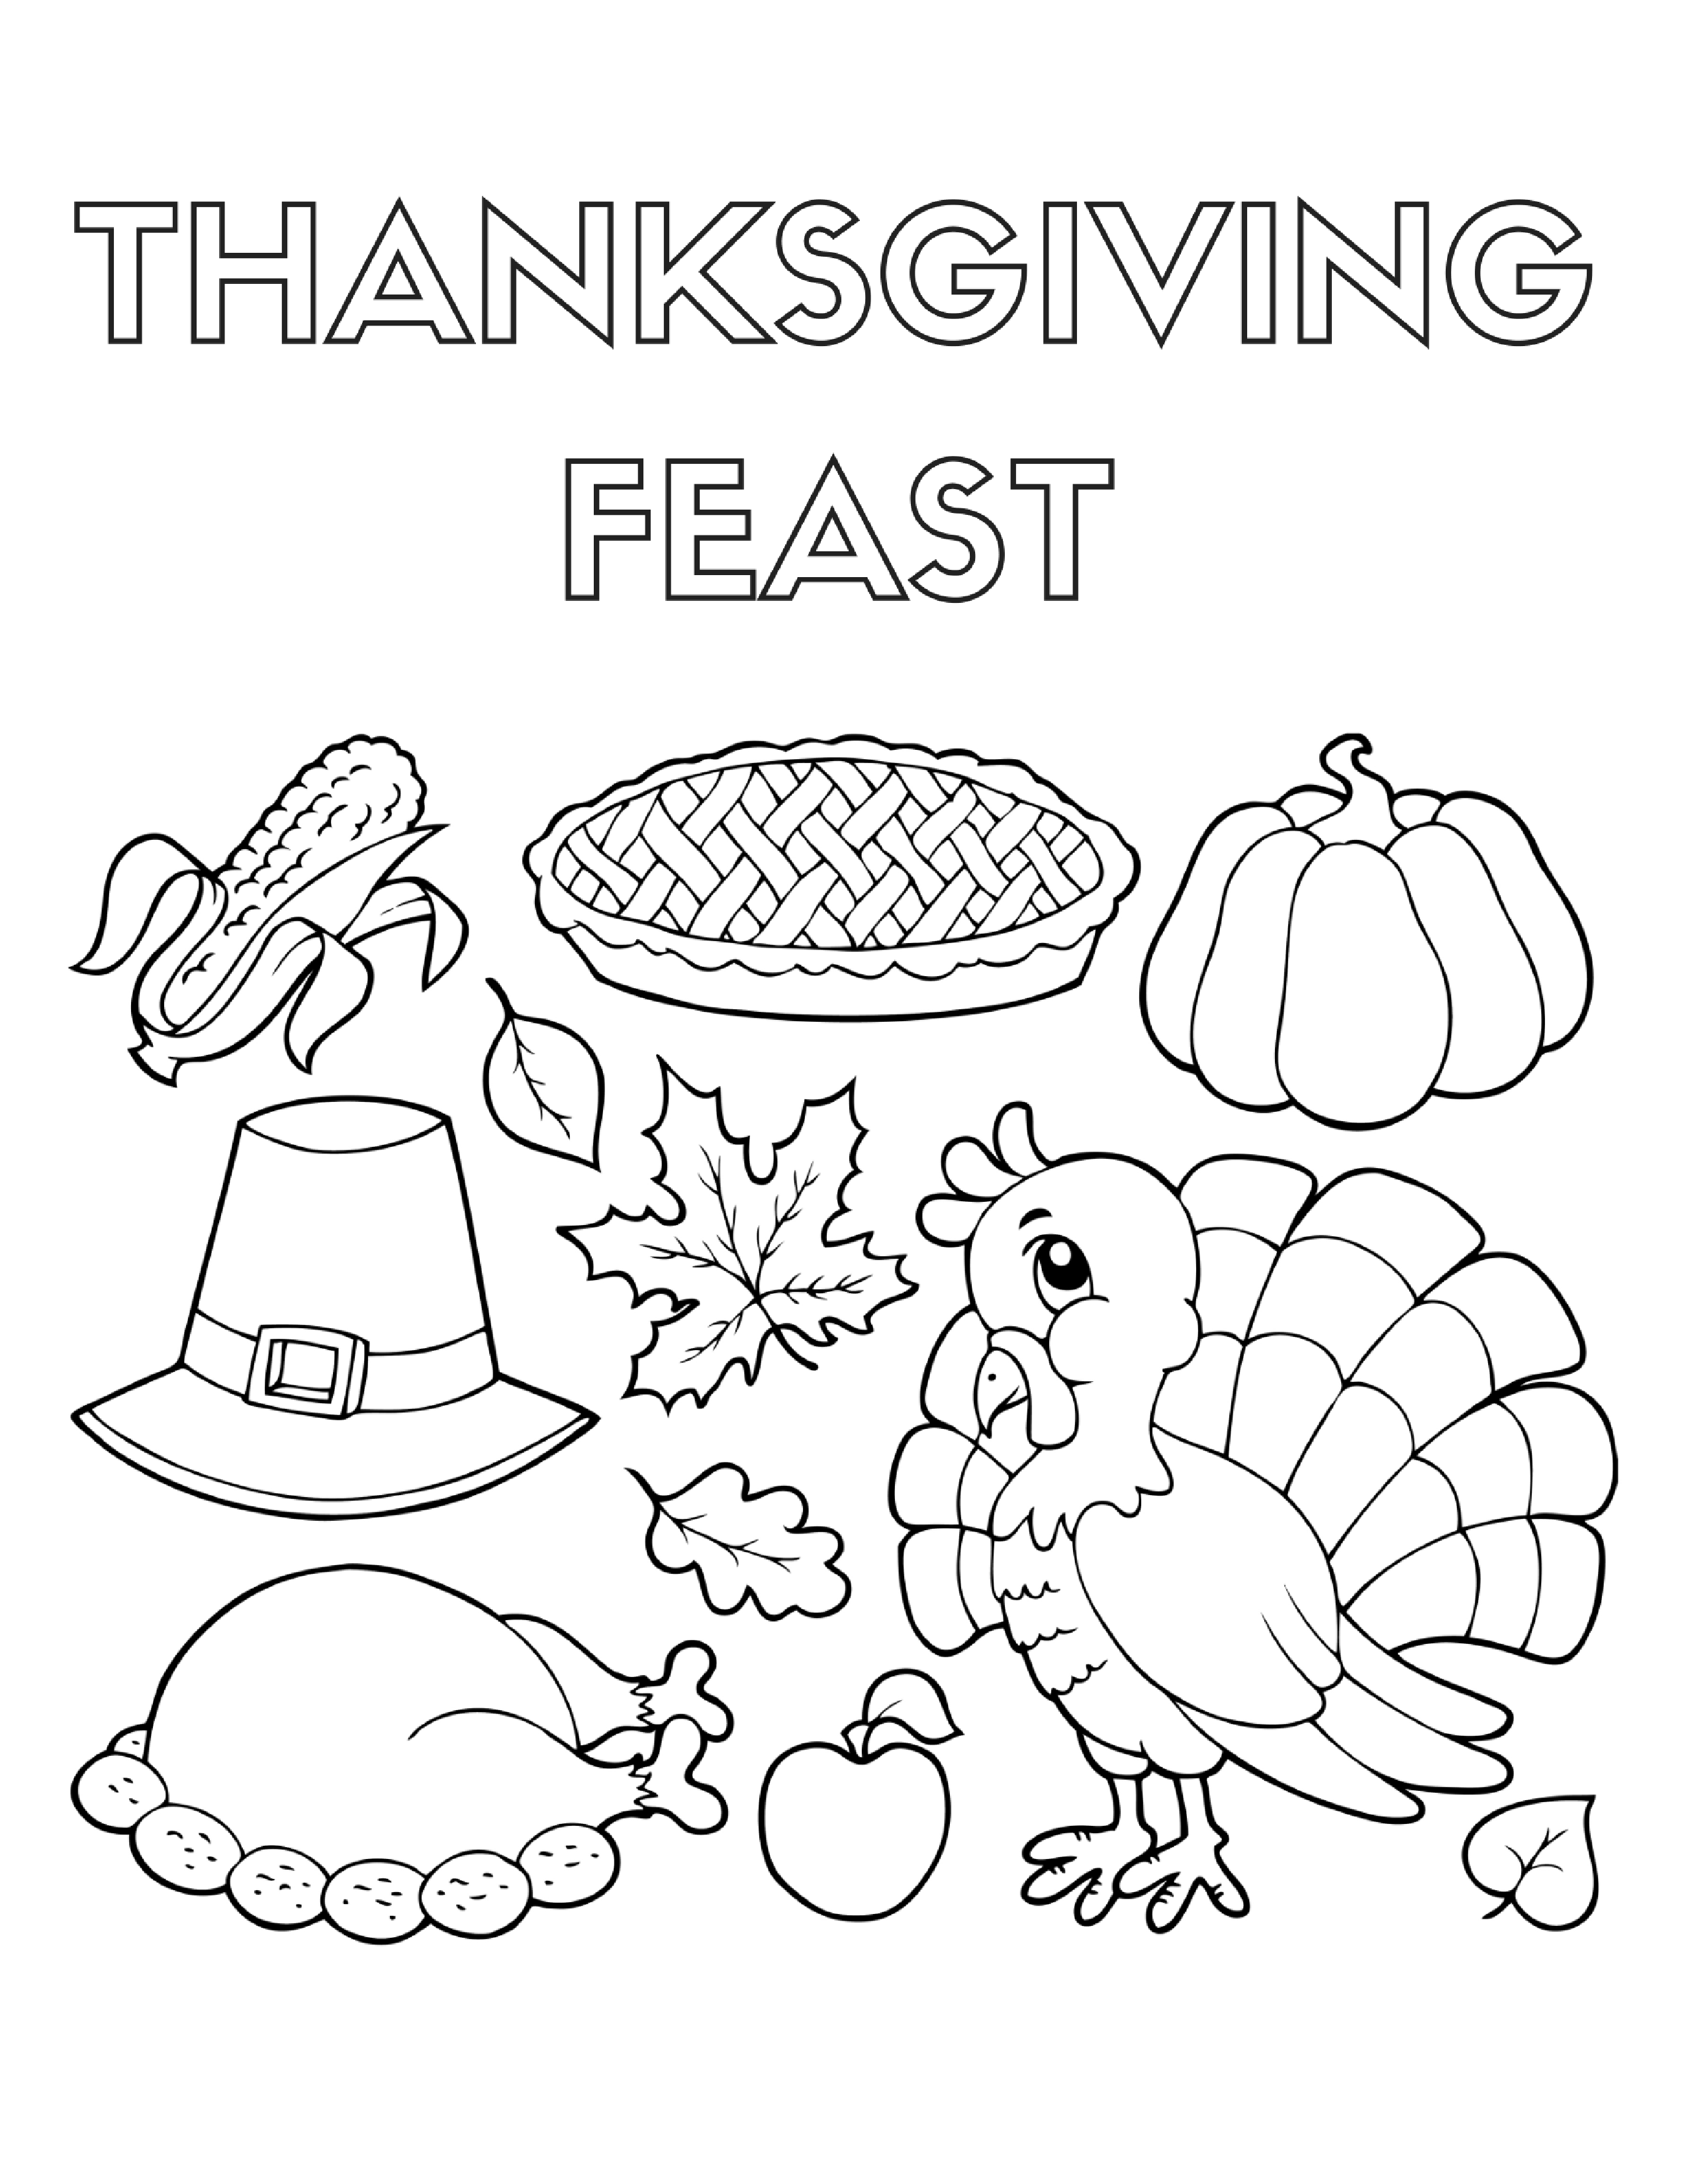 Thanksgiving Color Pages Check Out These Cute Coloring Sheets Thanksgiving Coloring Pages Food Coloring Pages Turkey Coloring Pages